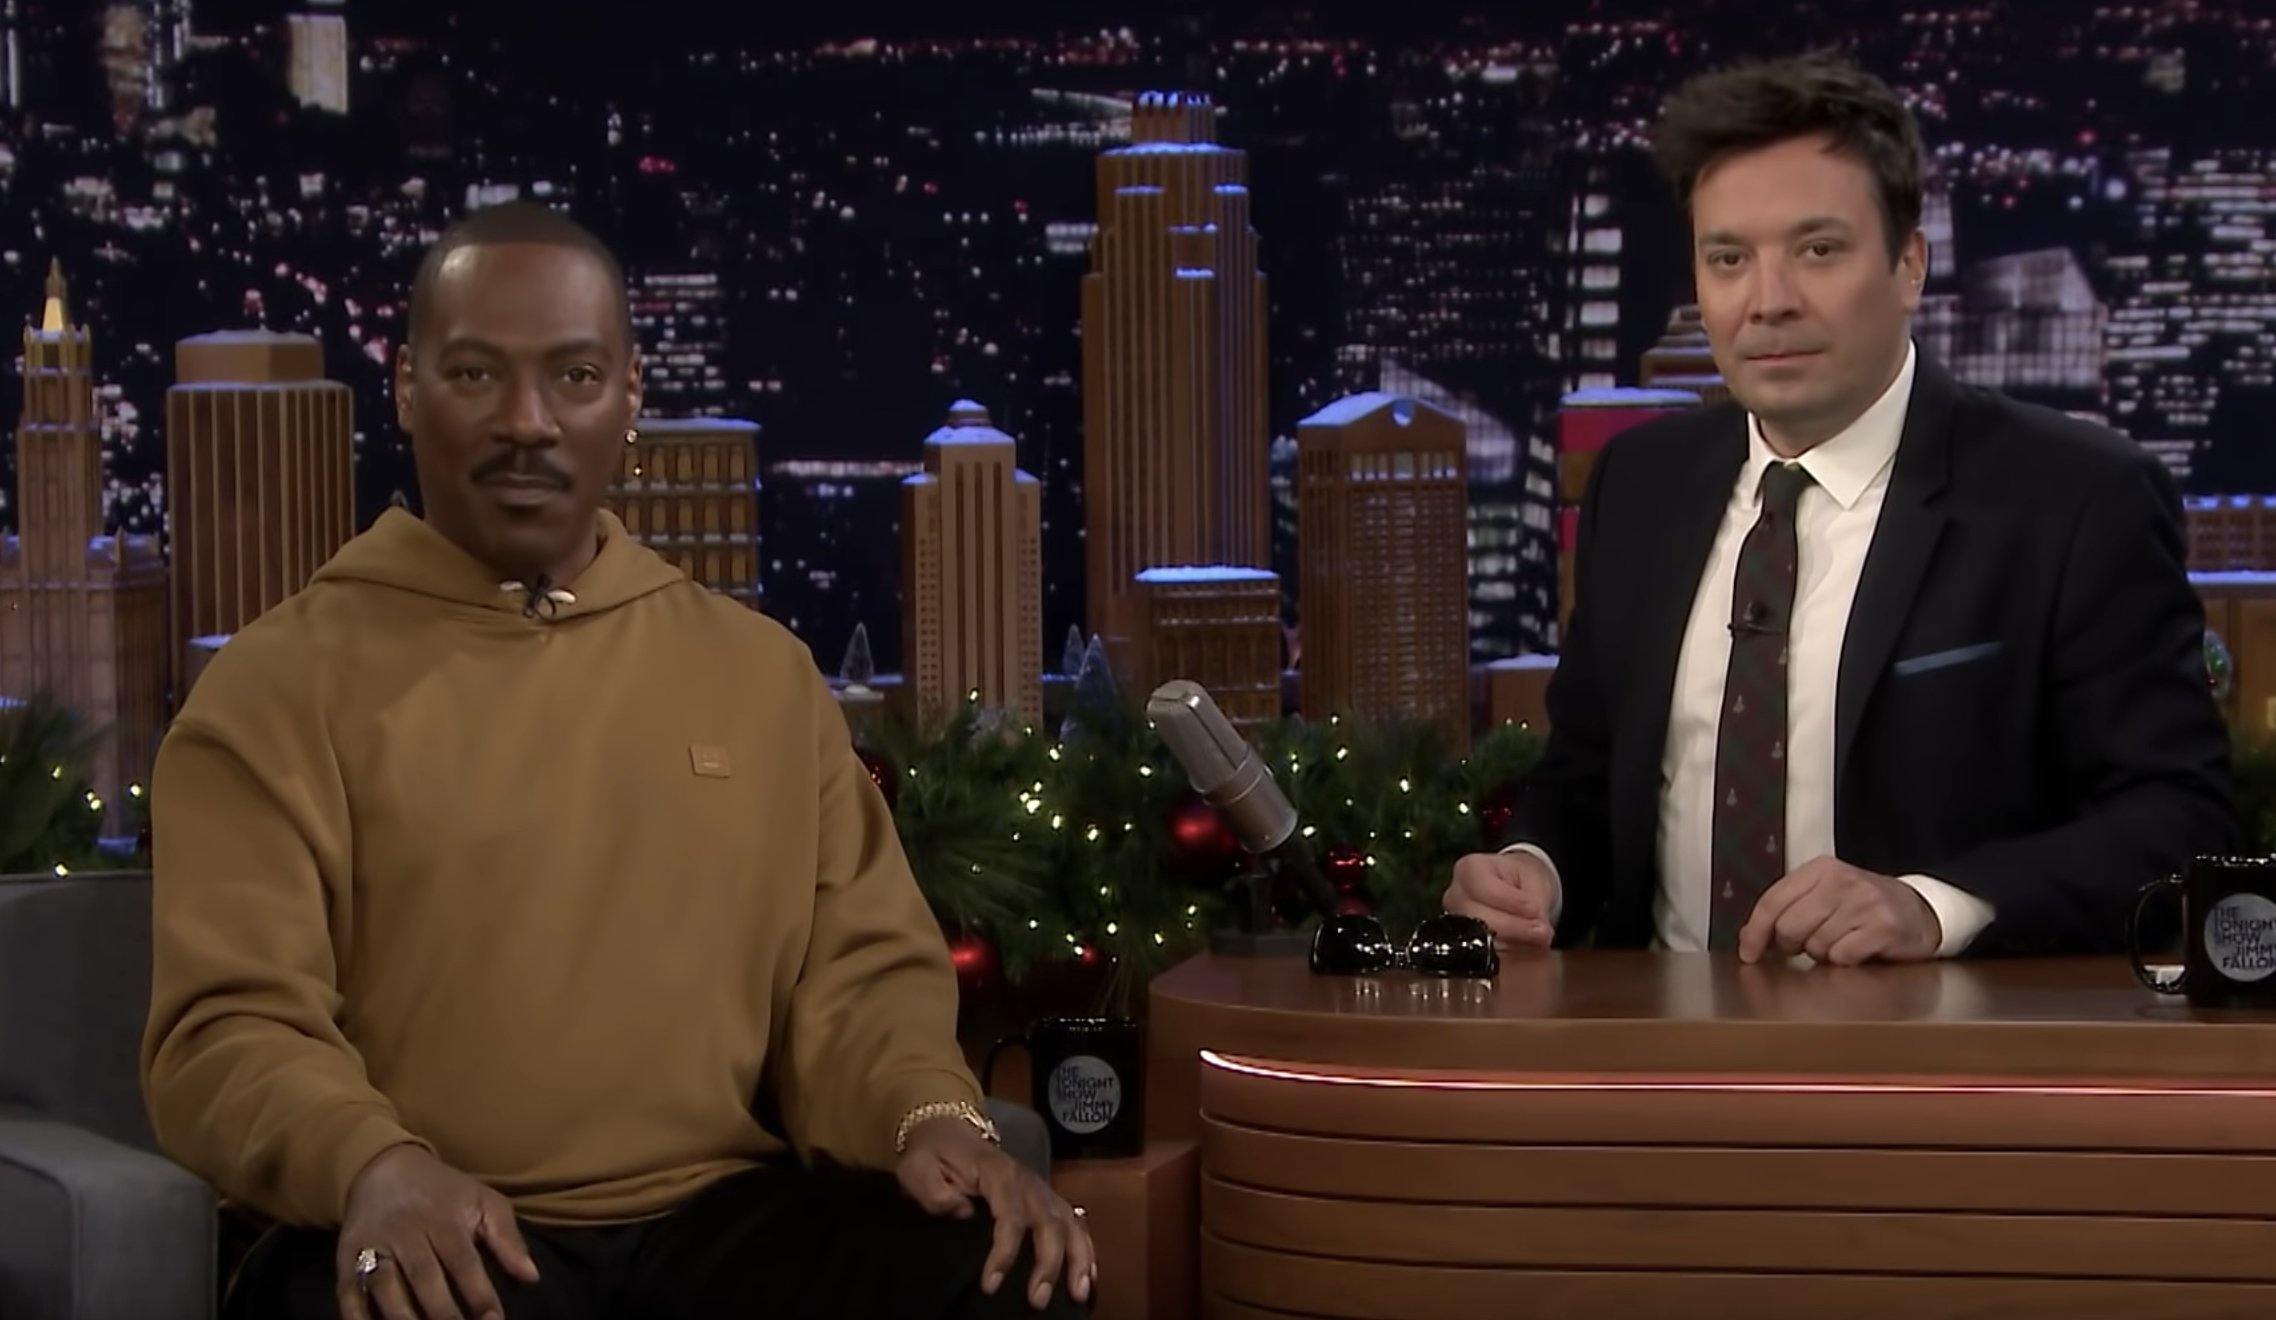 g21 1 20 Things You May Not Have Realised About Eddie Murphy